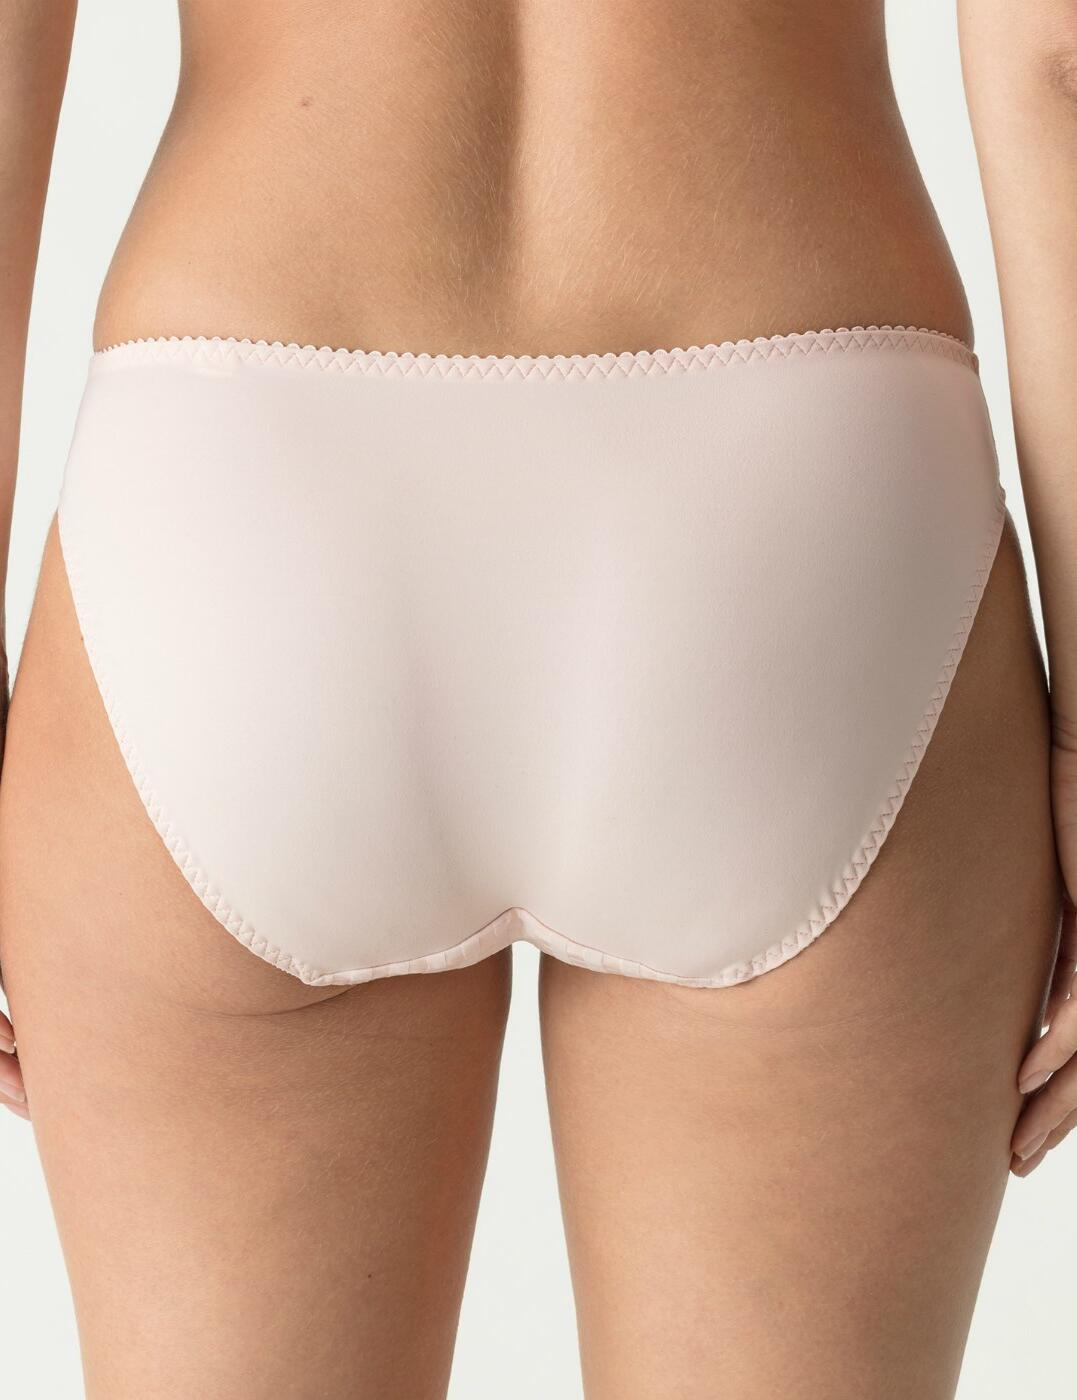 Prima-Donna-Madison-Rio-Briefs-Knickers-0562120-Womens-Luxury-Lingerie thumbnail 13